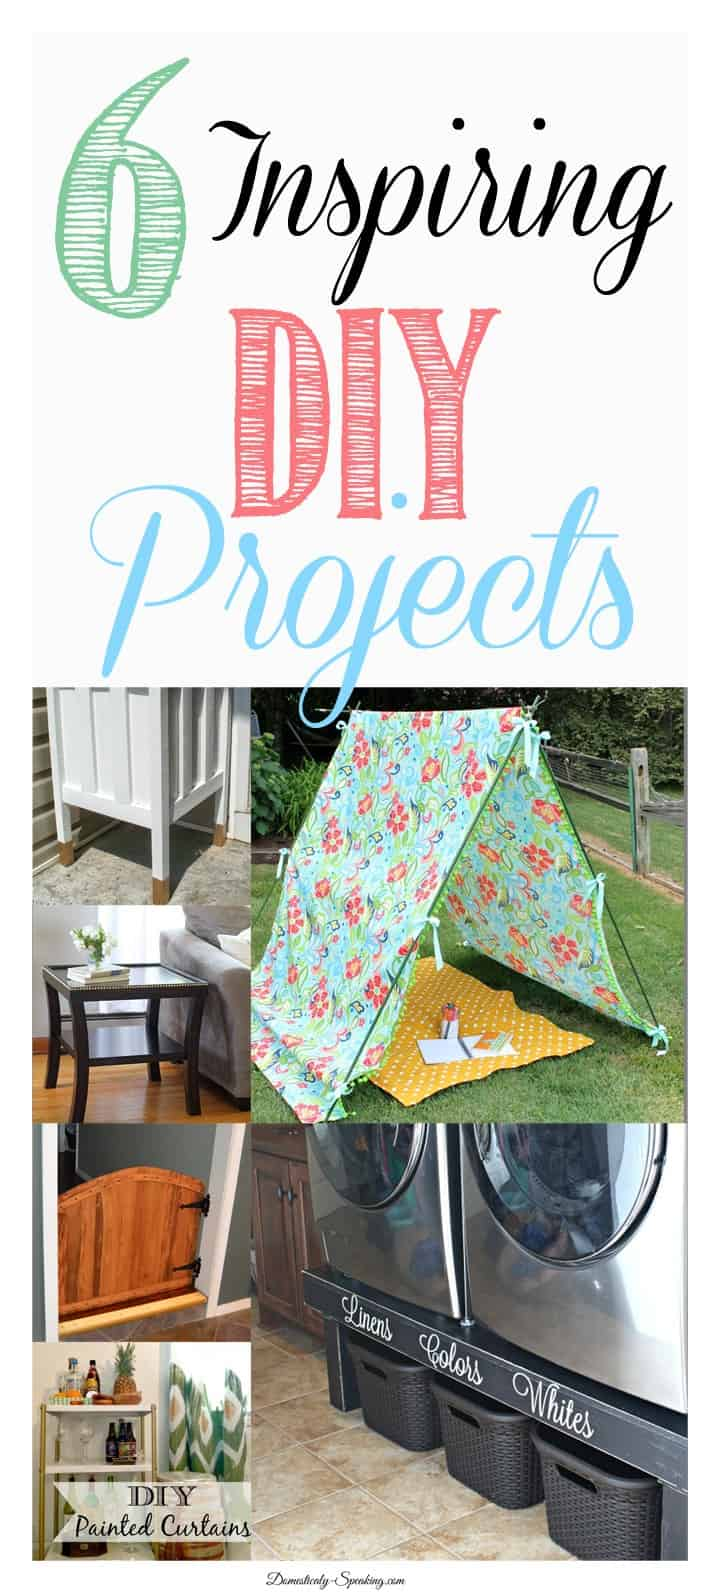 6 Inspiring DIY Projects perfect for the weekend!